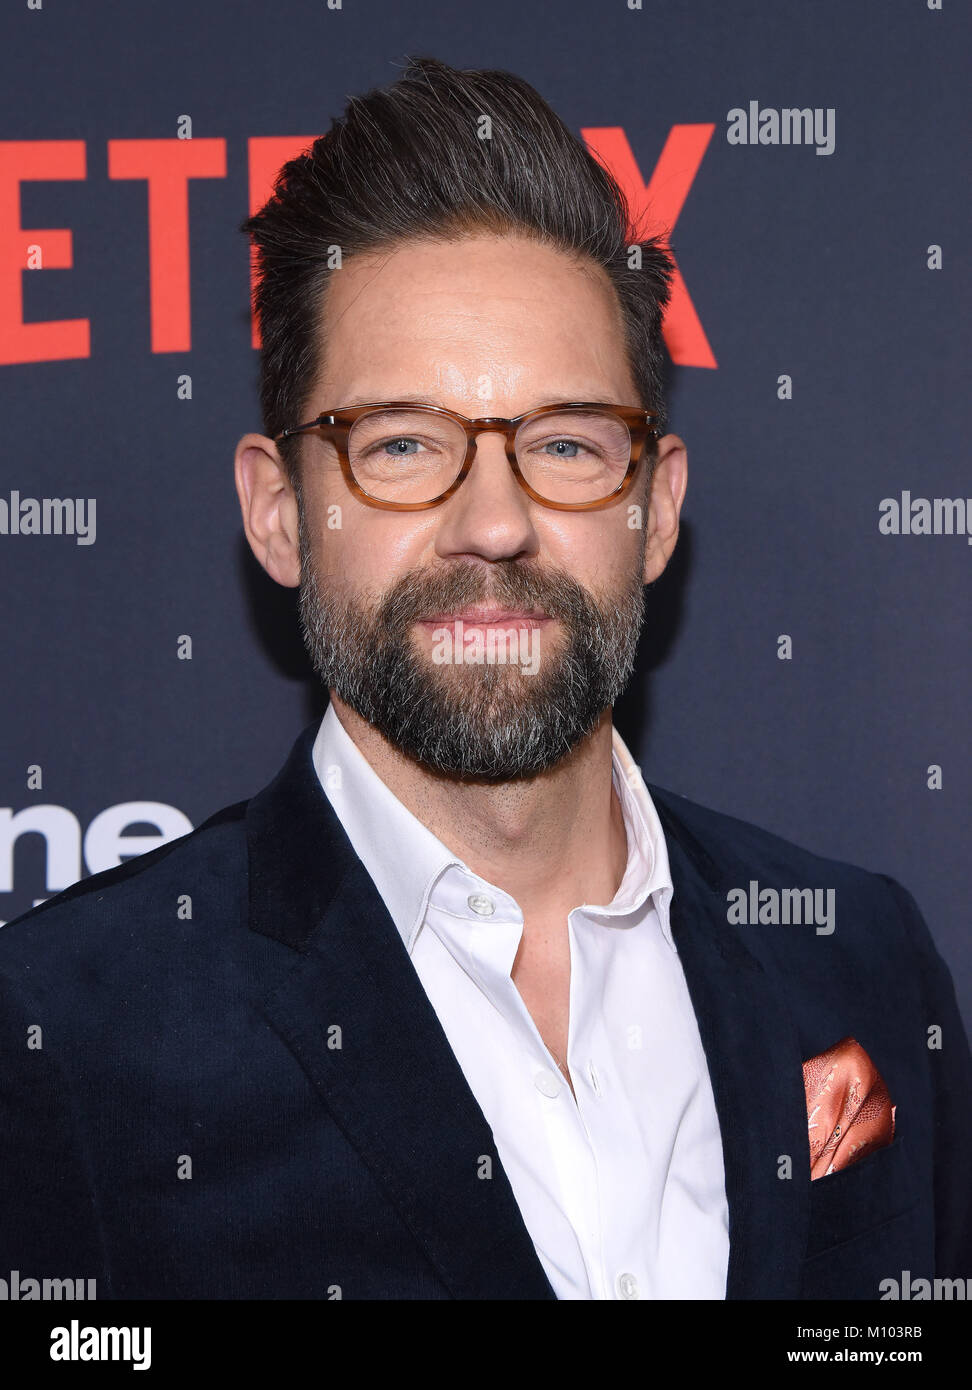 Hollywood, California, USA  24th Jan, 2018  Todd Grinnell arrives